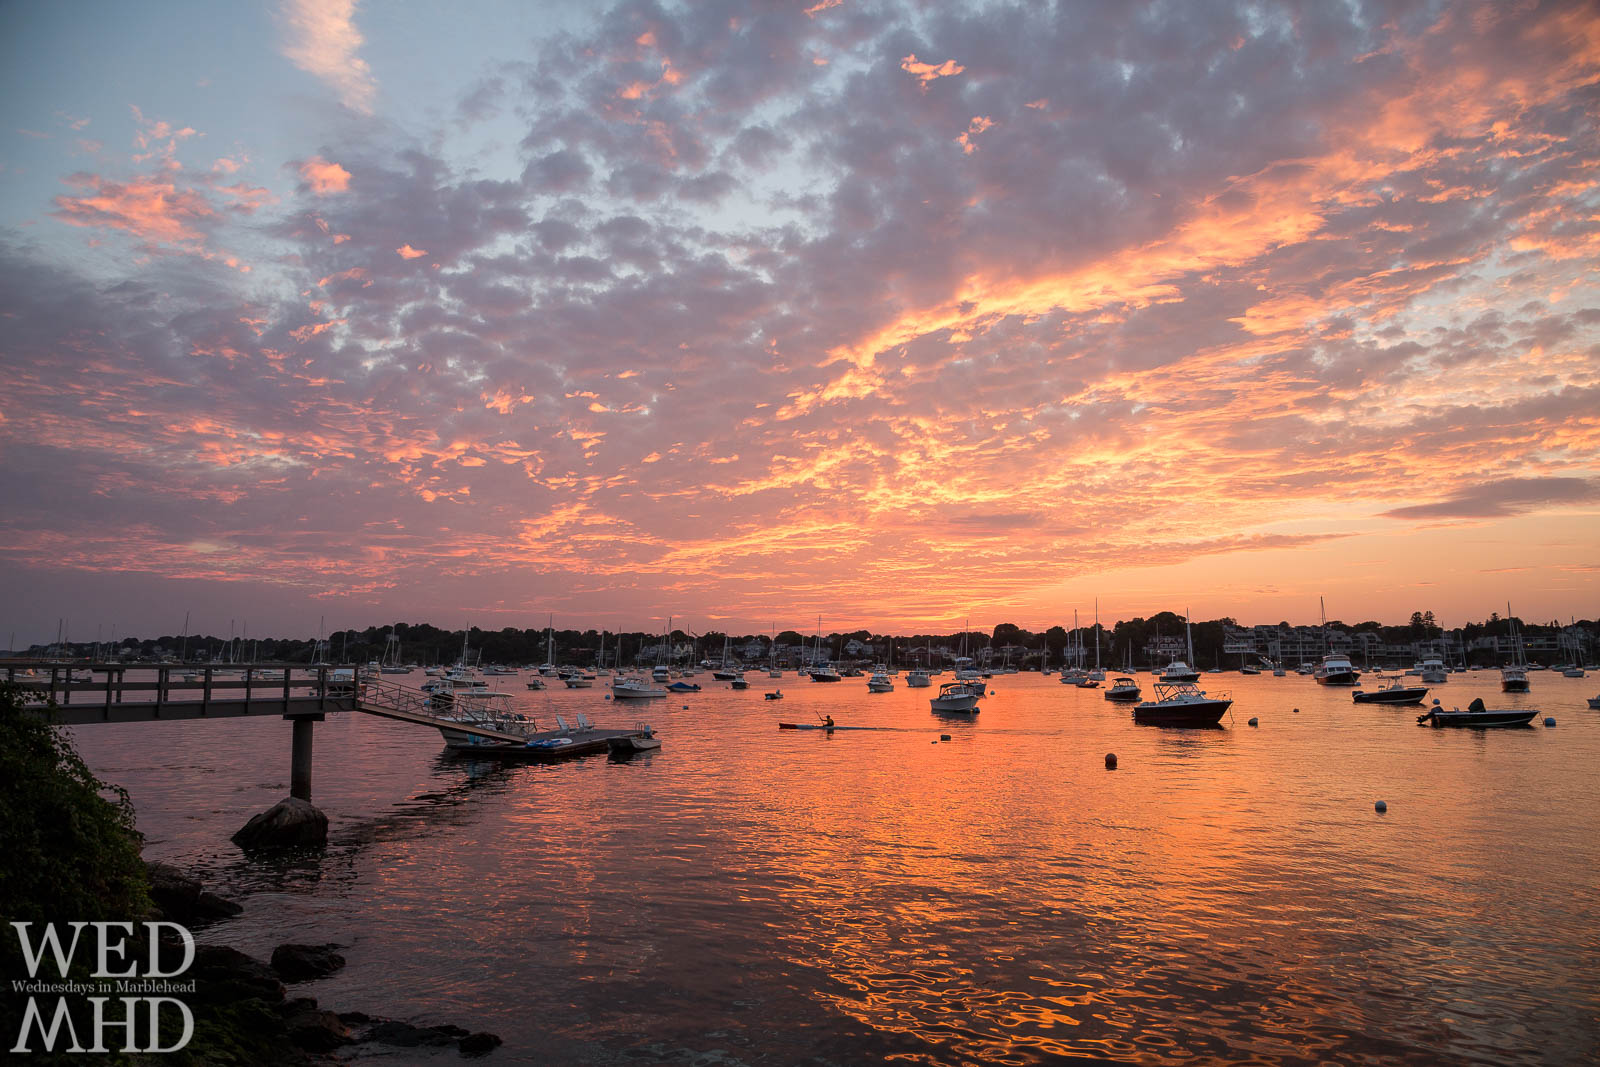 A man in a kayak is captured rowing through Marblehead Harbor as the sunset explodes above and reflects in the still water